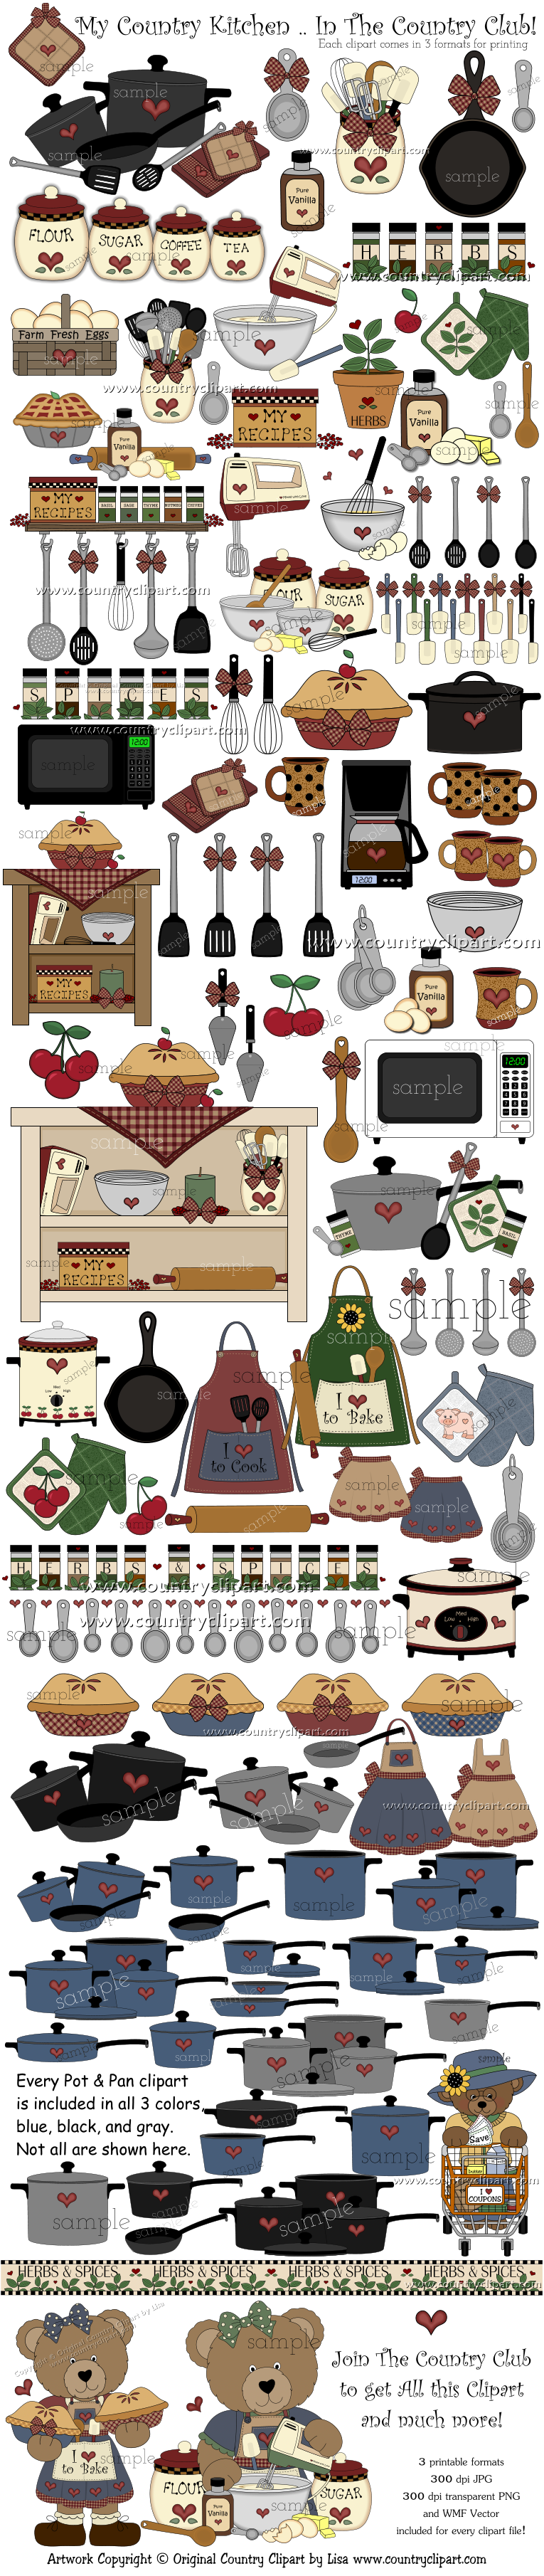 Cookbook clipart country kitchen. Graphics